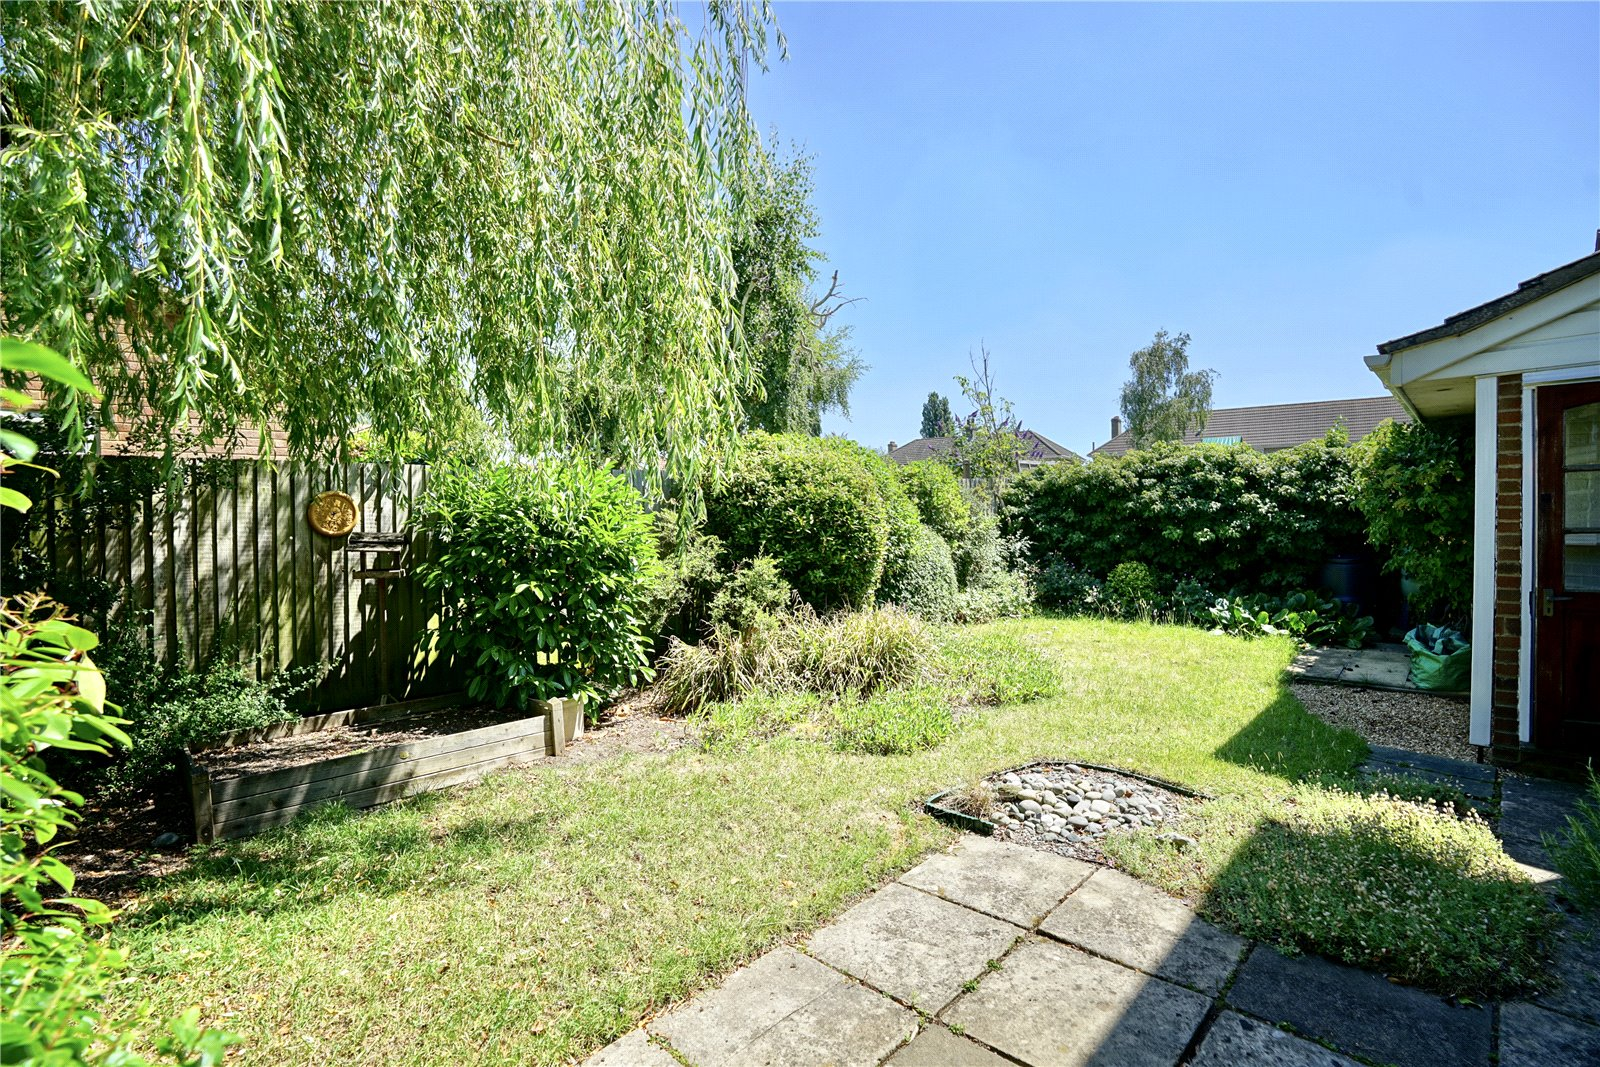 4 bed house for sale in All Hallows, Sandy 12